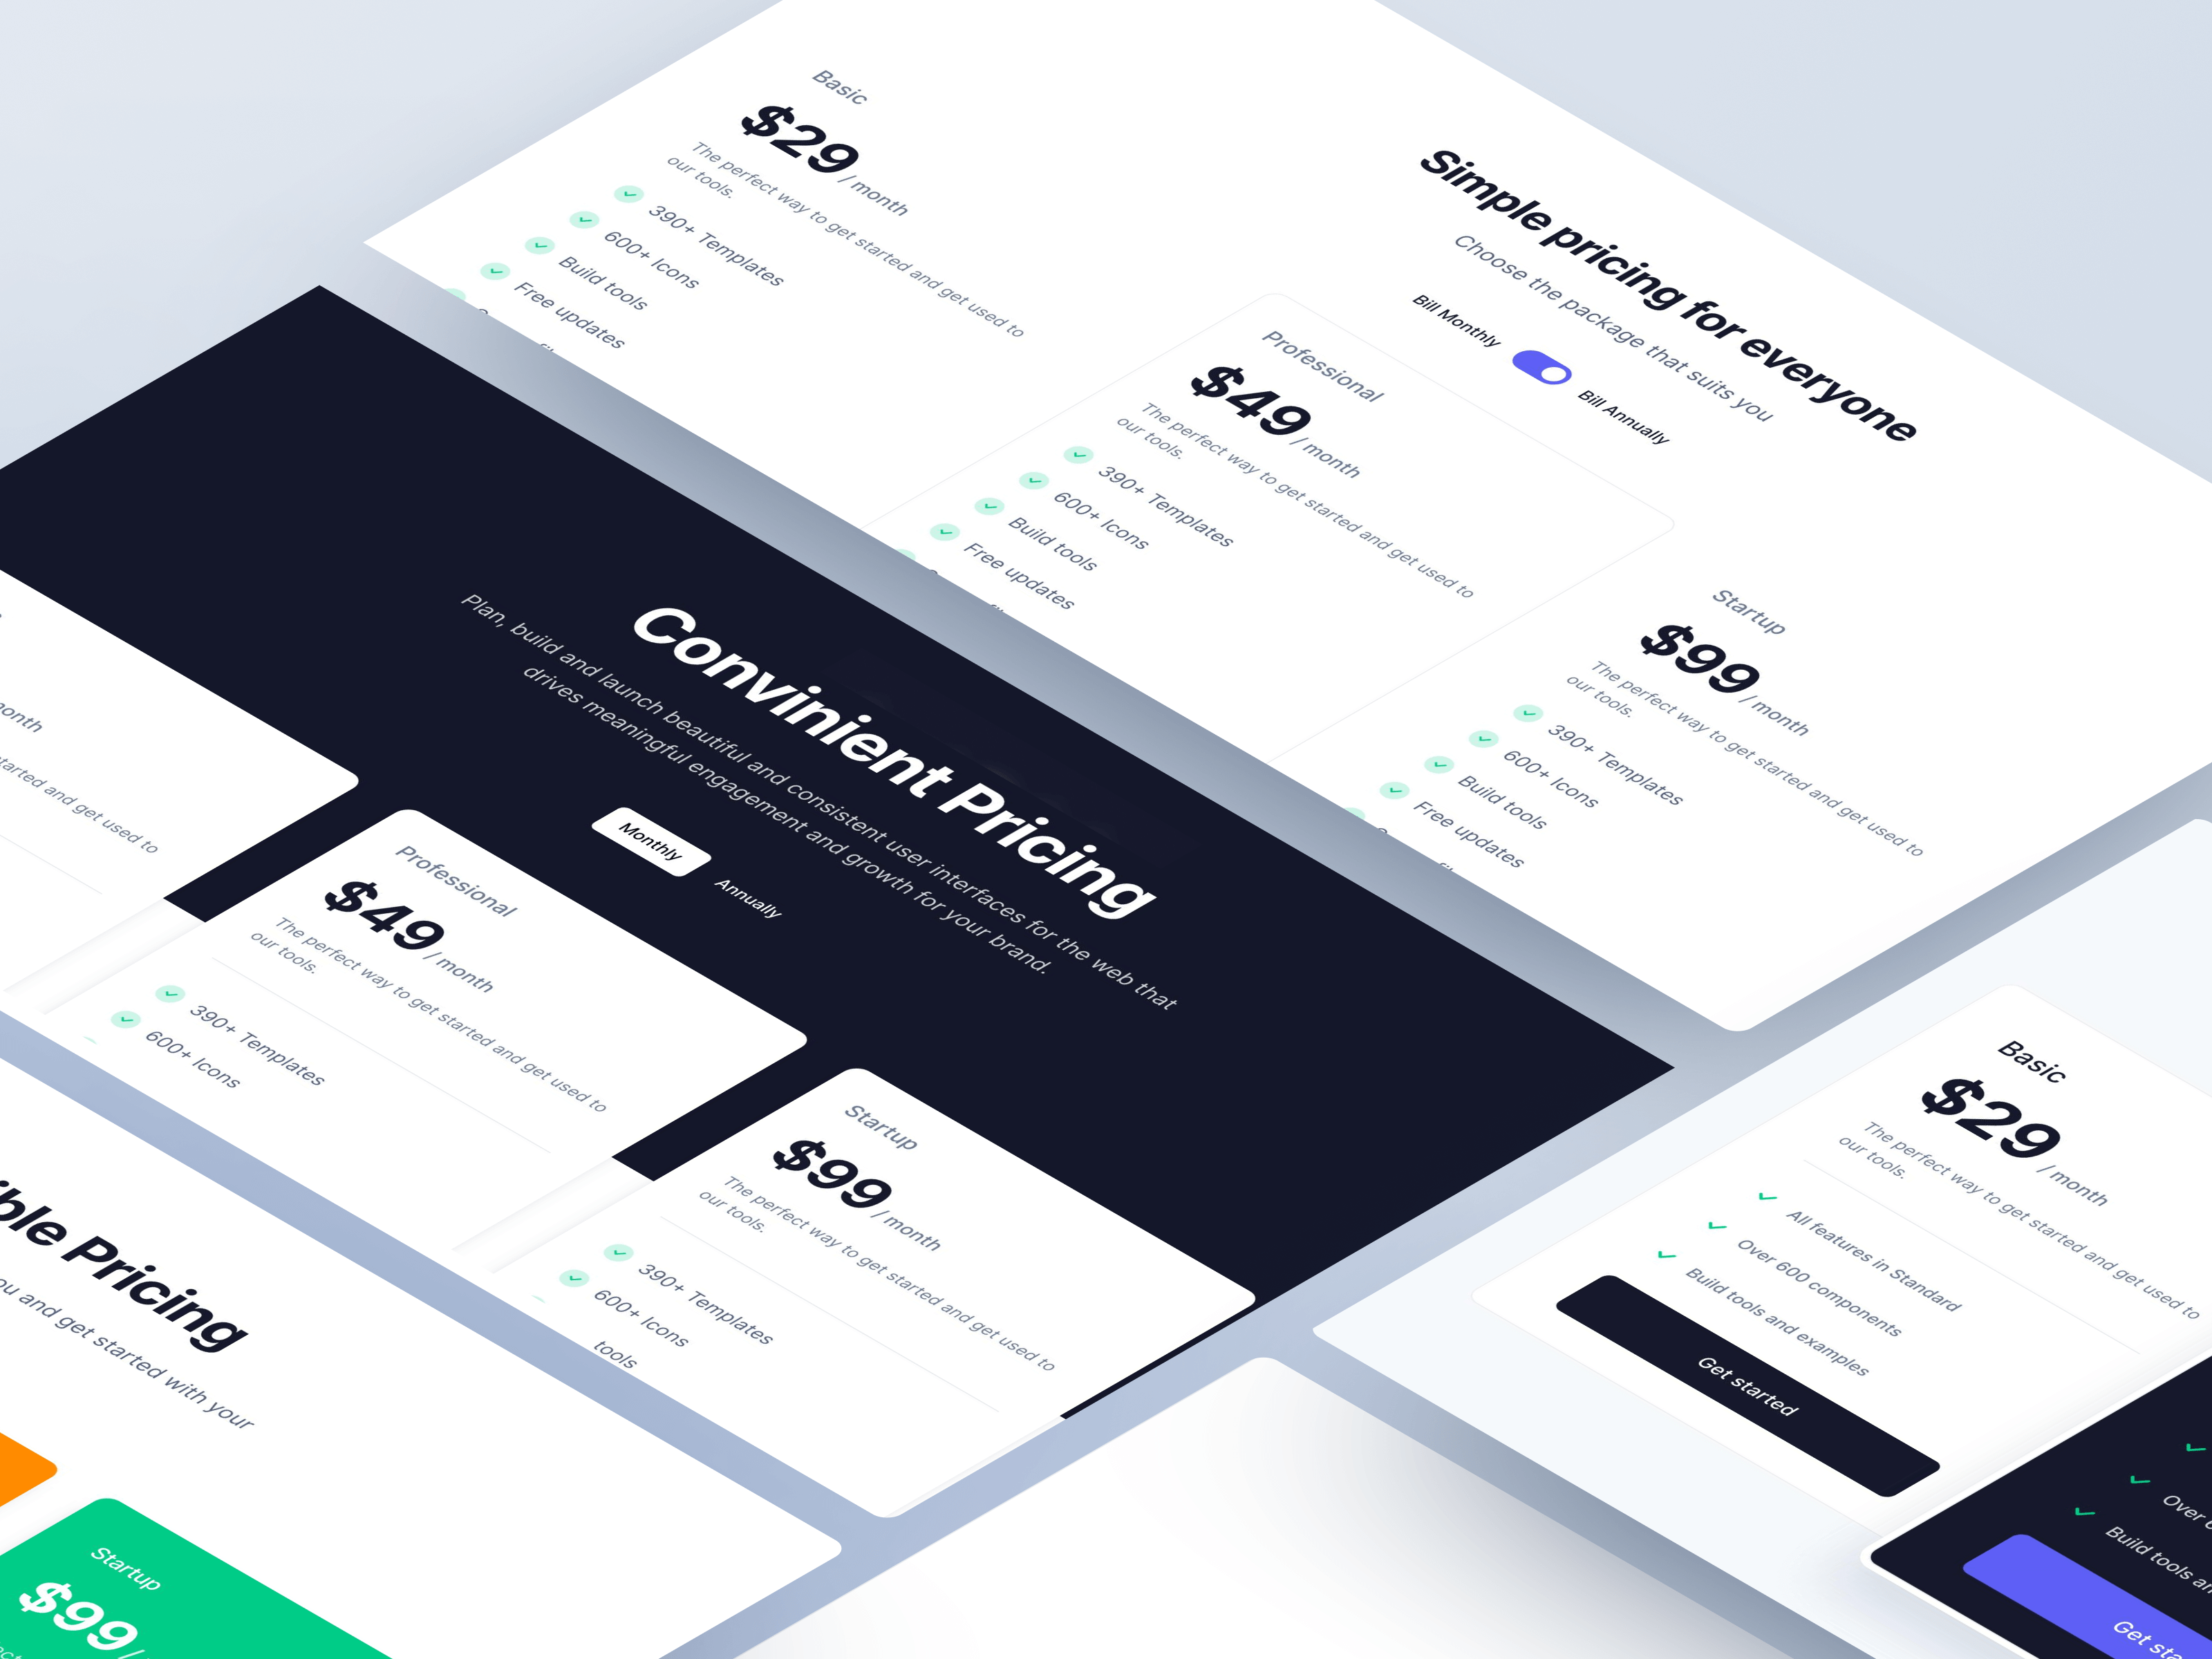 Bootstrap Pricing Templates